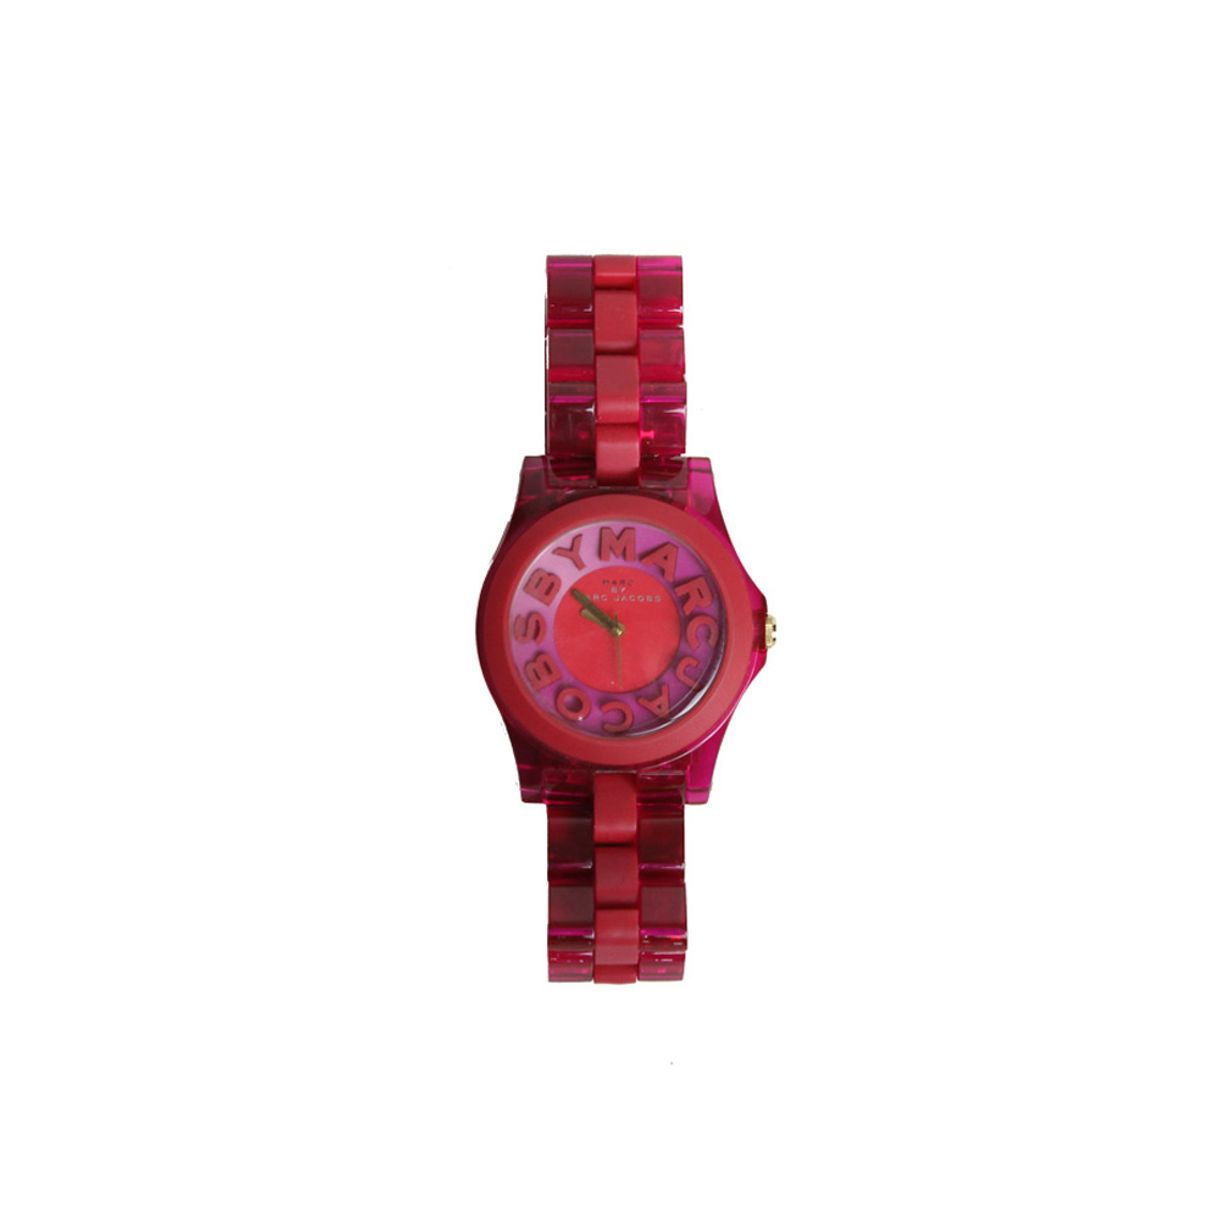 relogio-marc-by-marc-jacobs-rosa